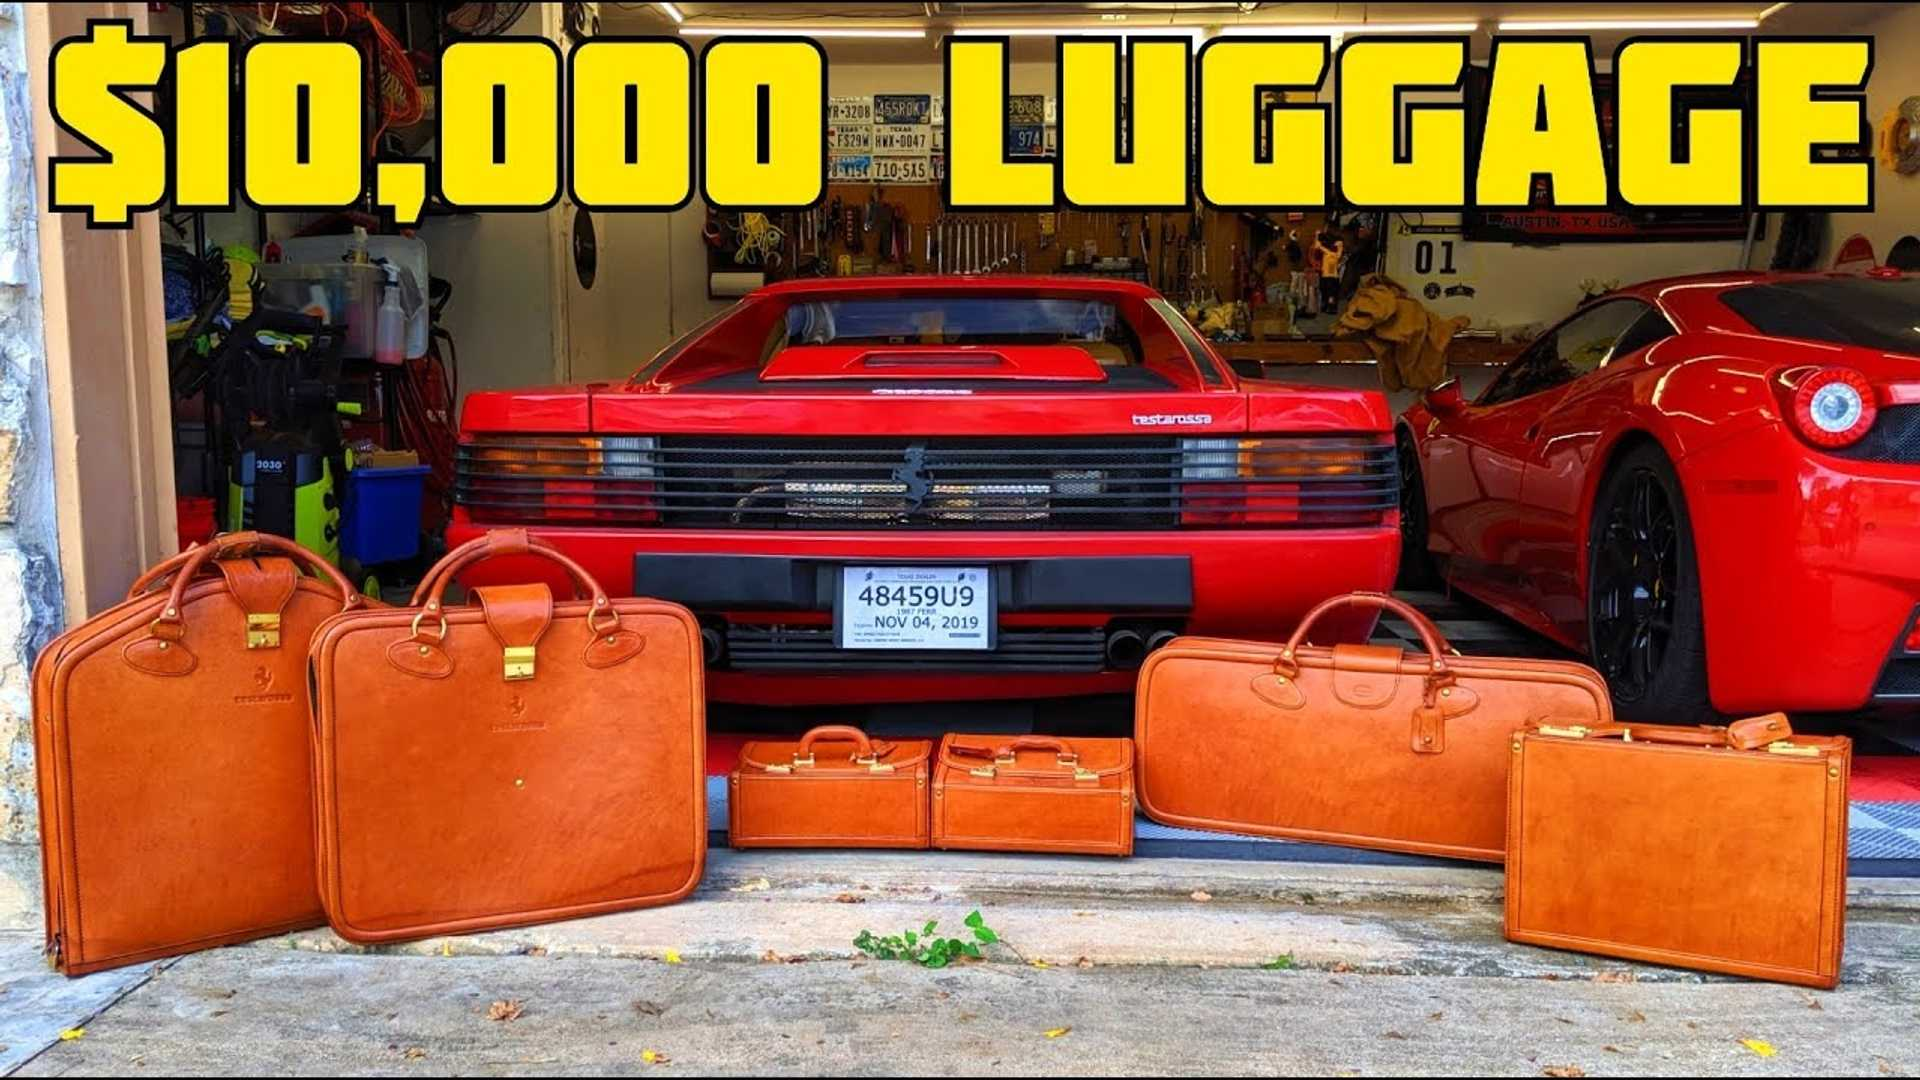 Ever see the Ferrari Testarossa's original $10,000 luggage set?